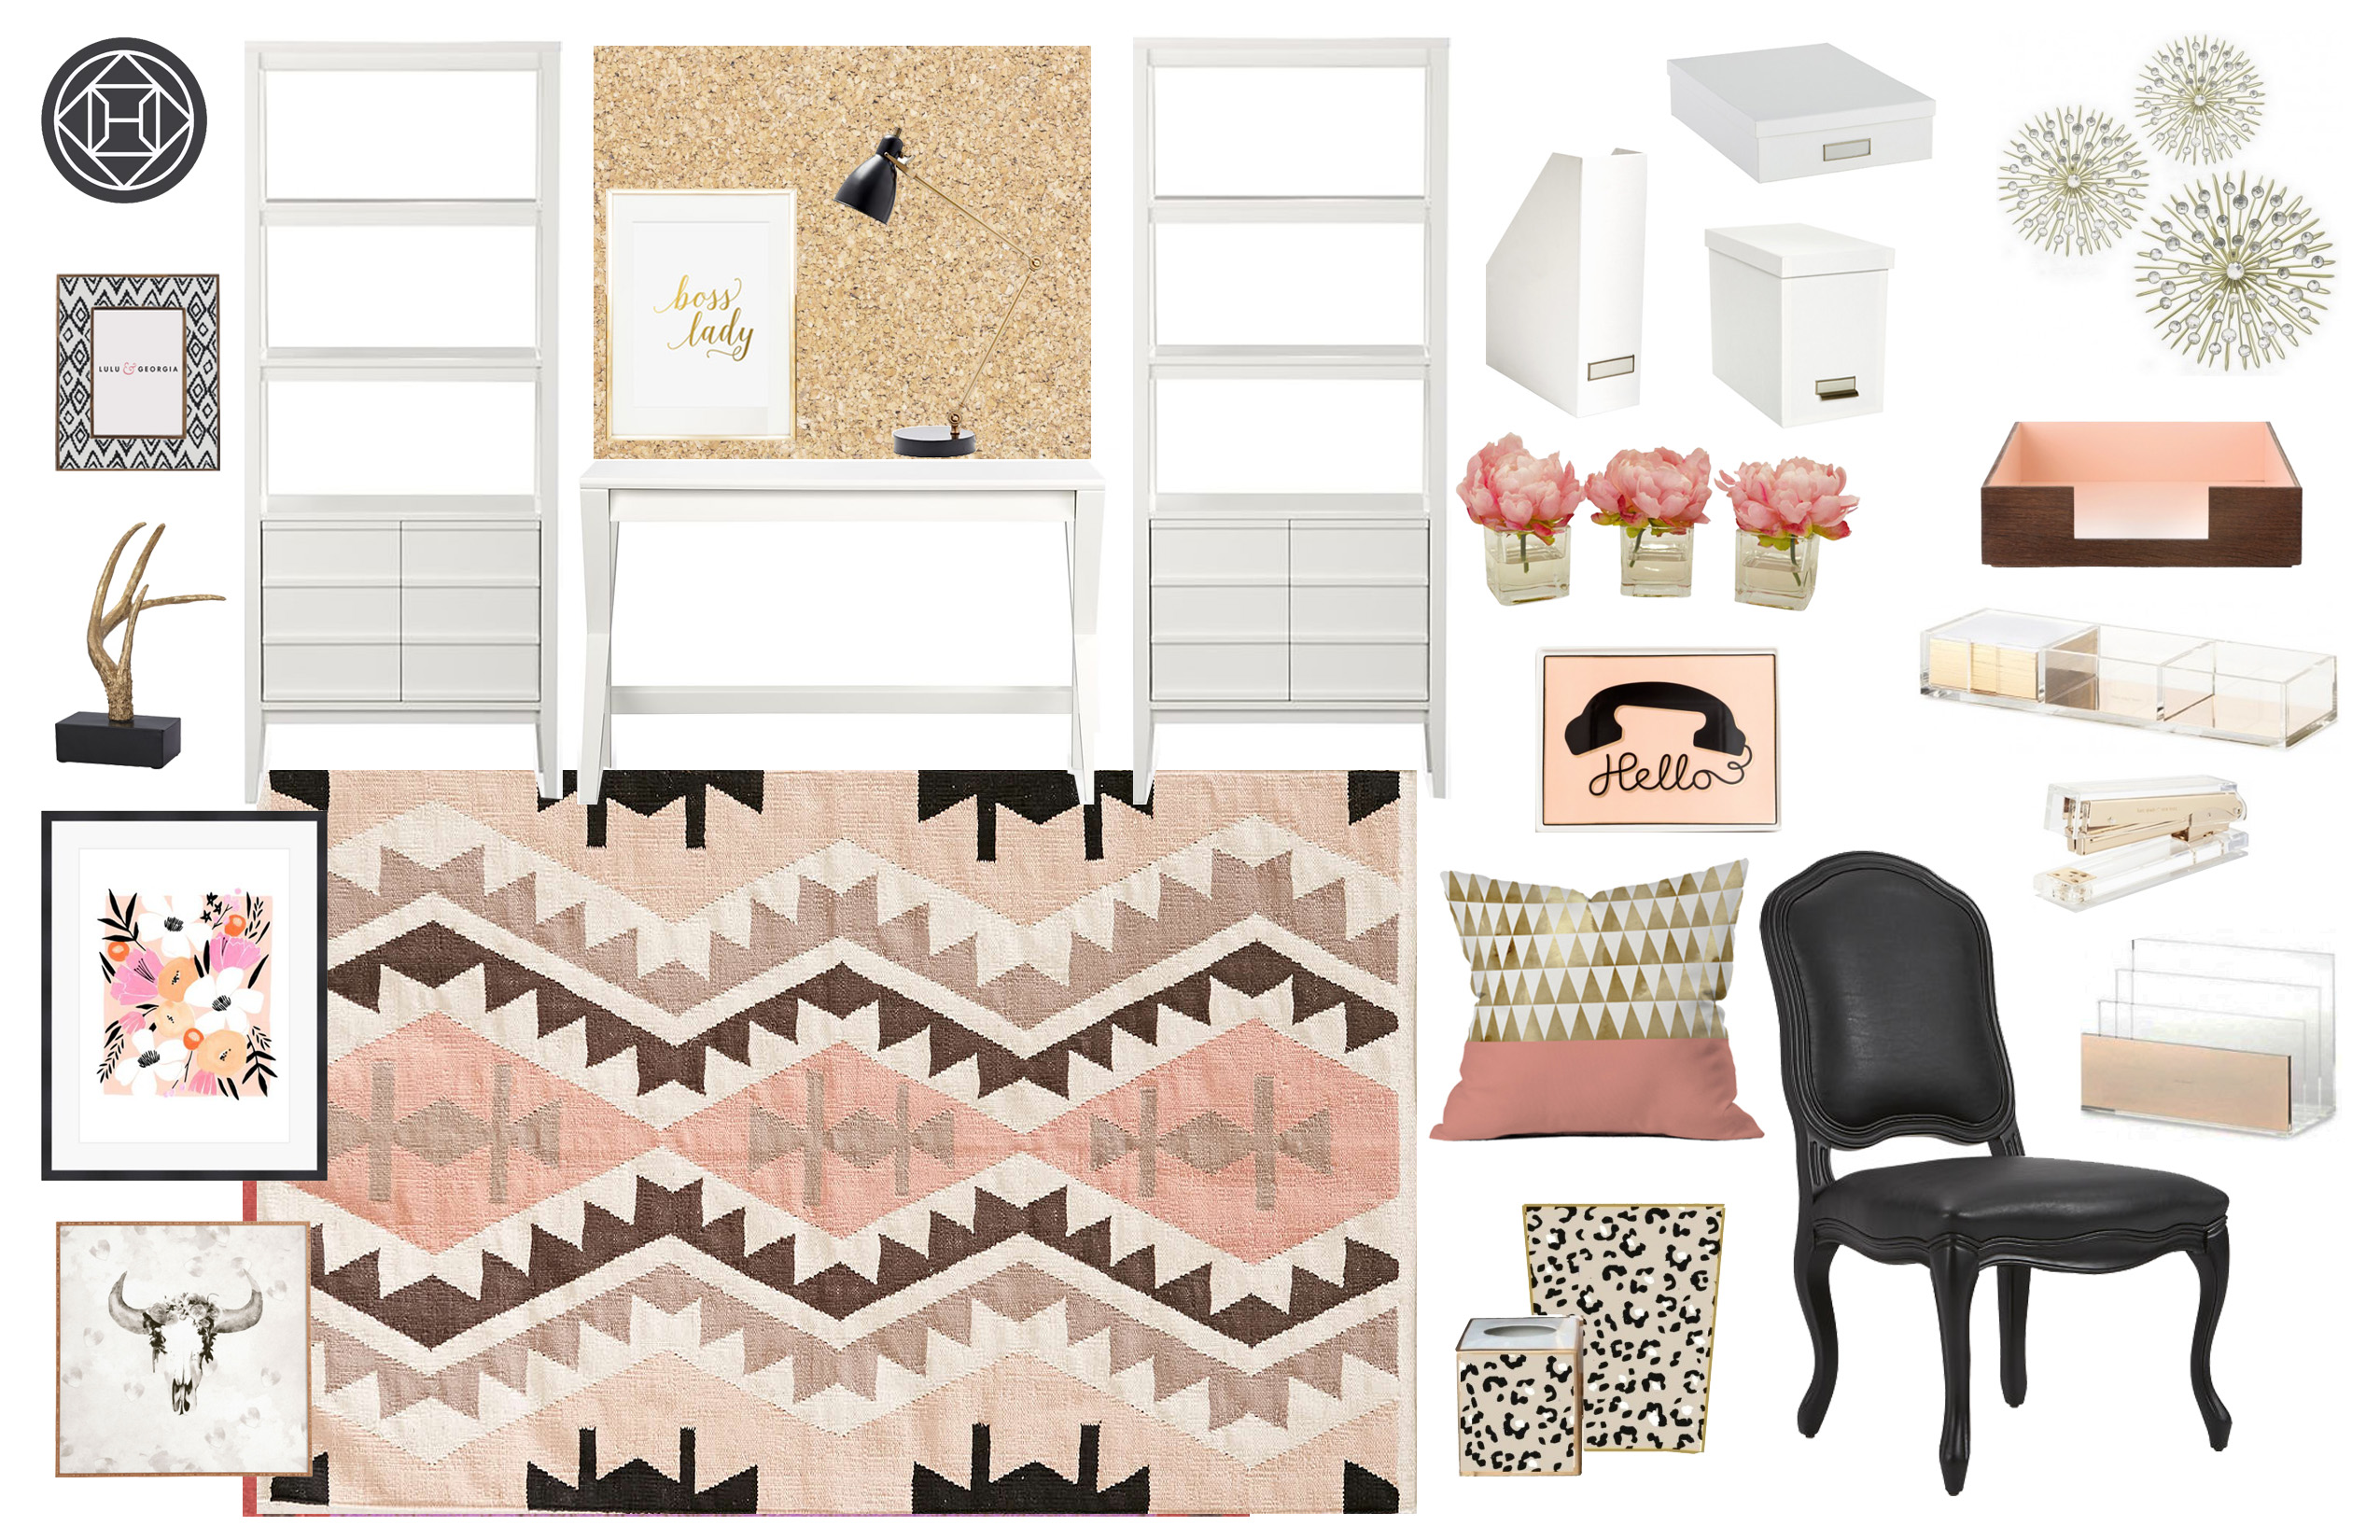 Heather Stammen Office Concept 2